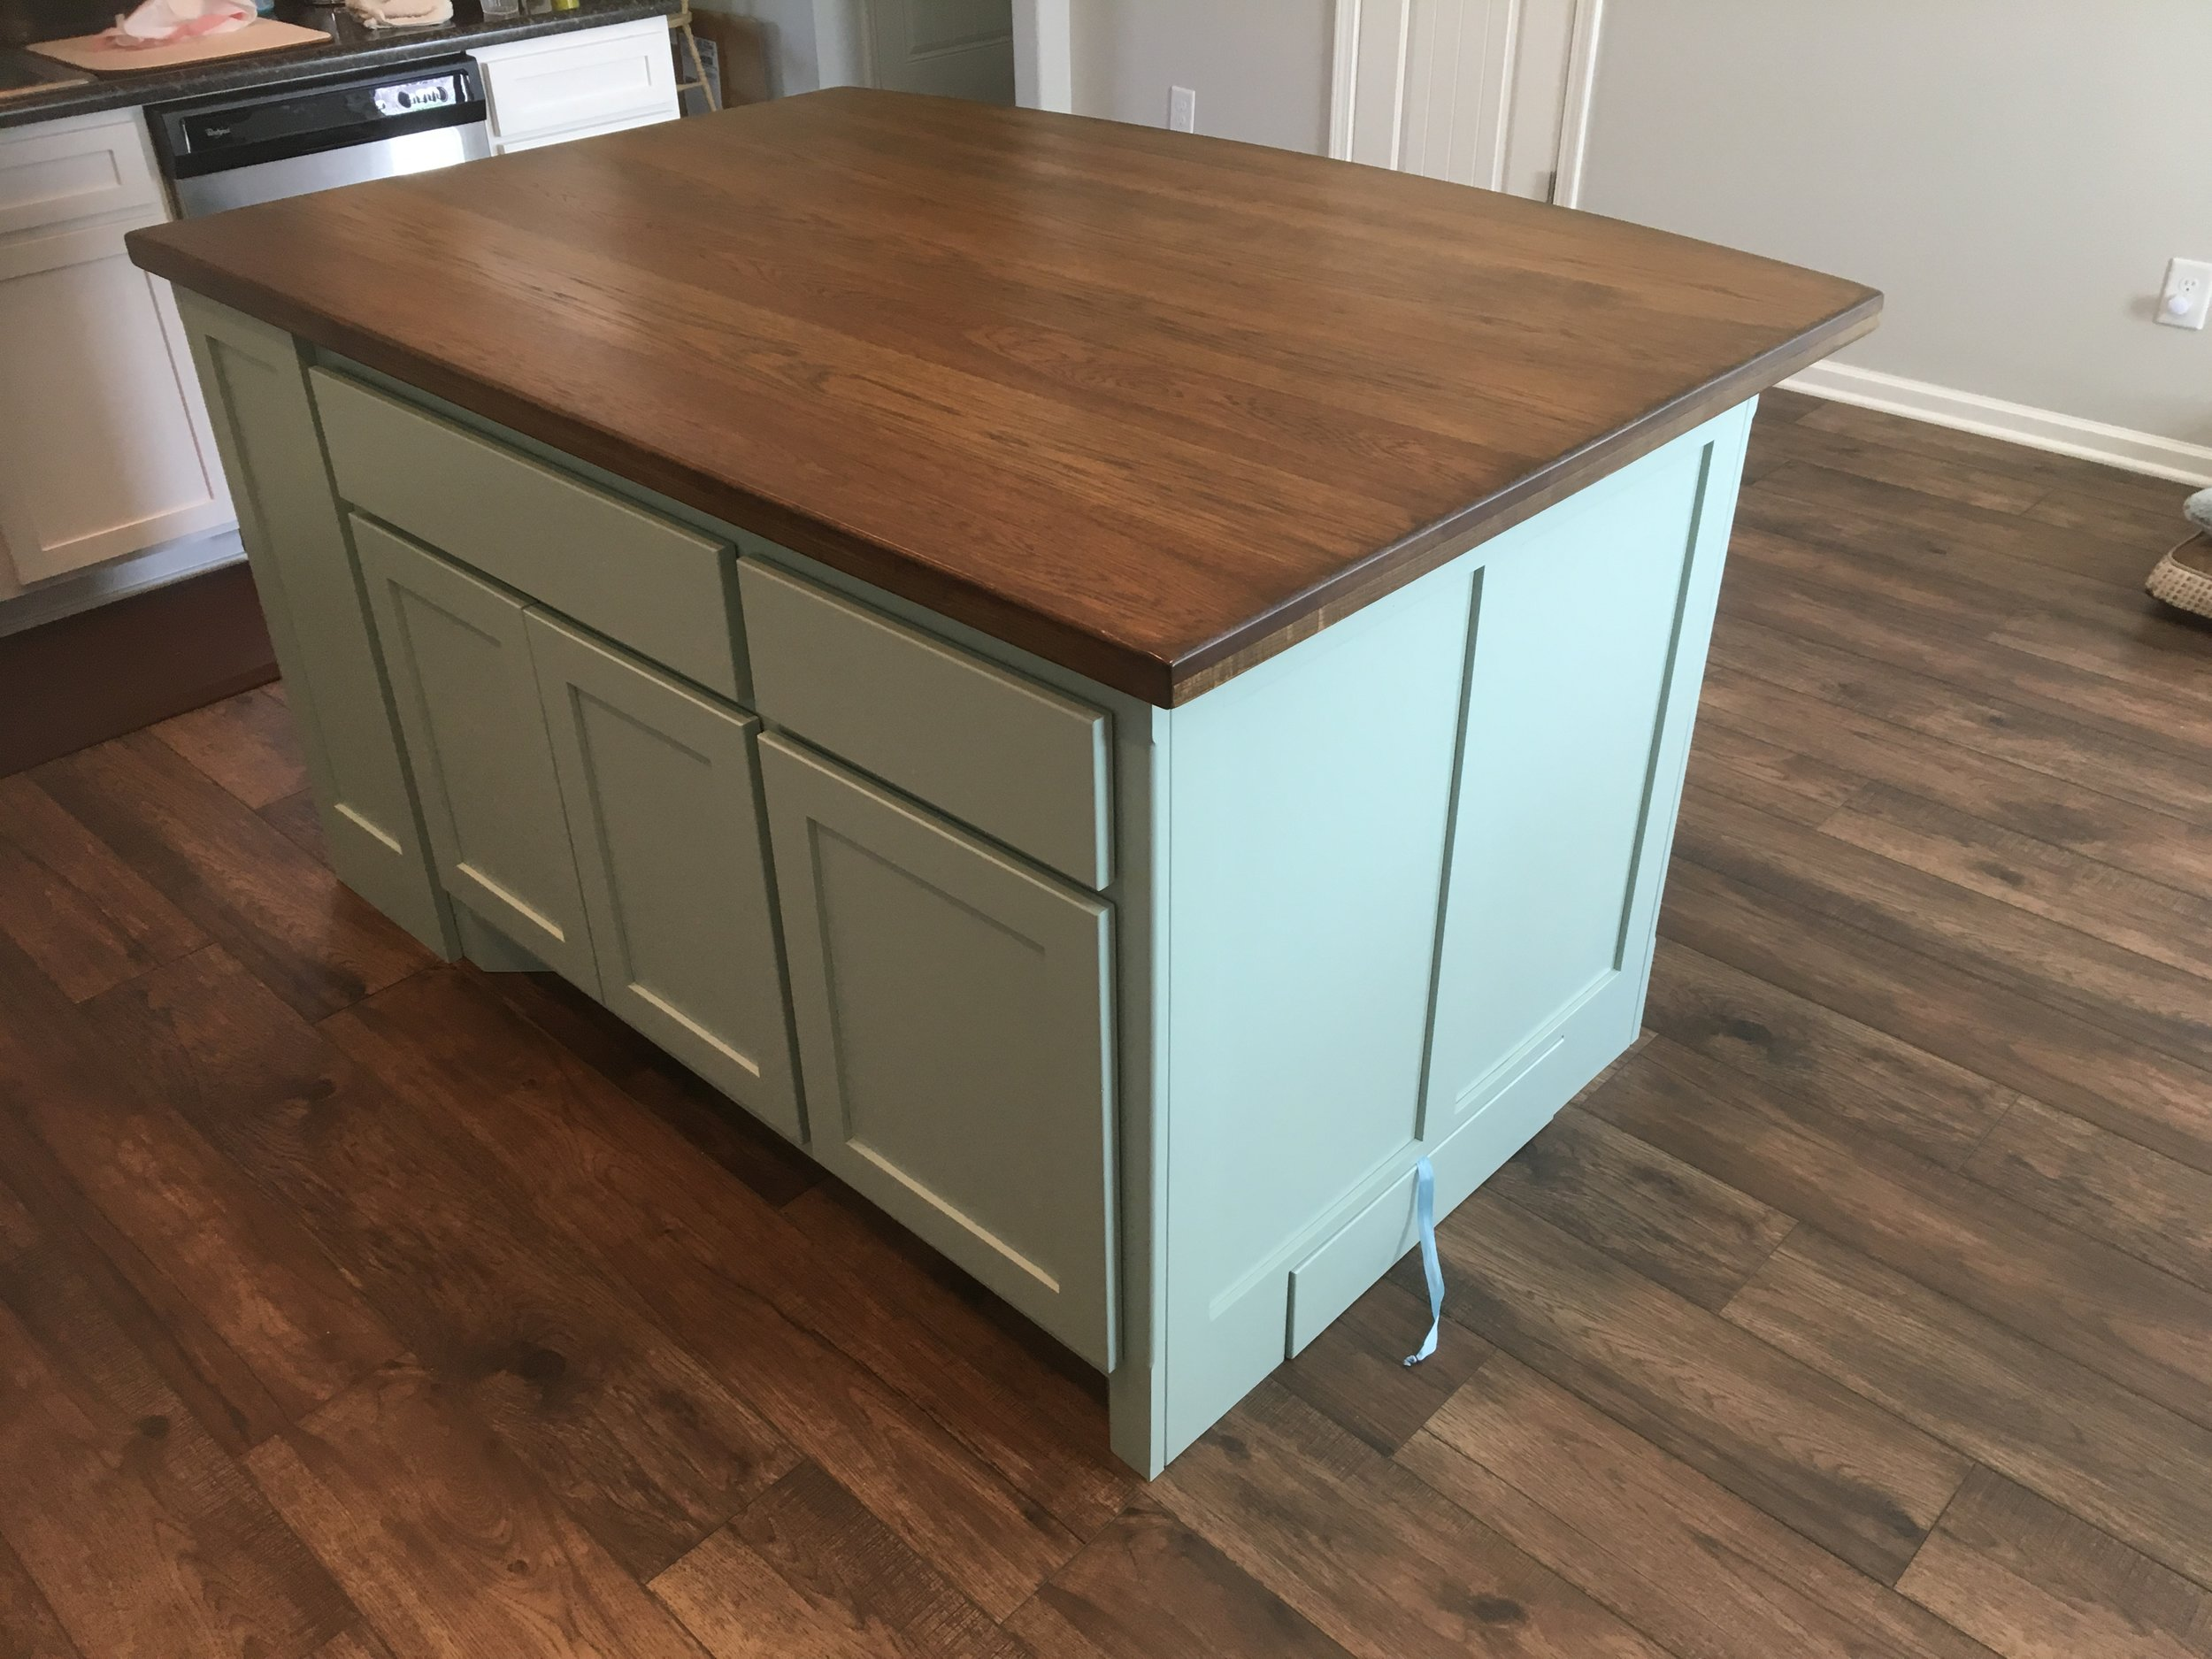 Cabinet Island/Hickory Countertop